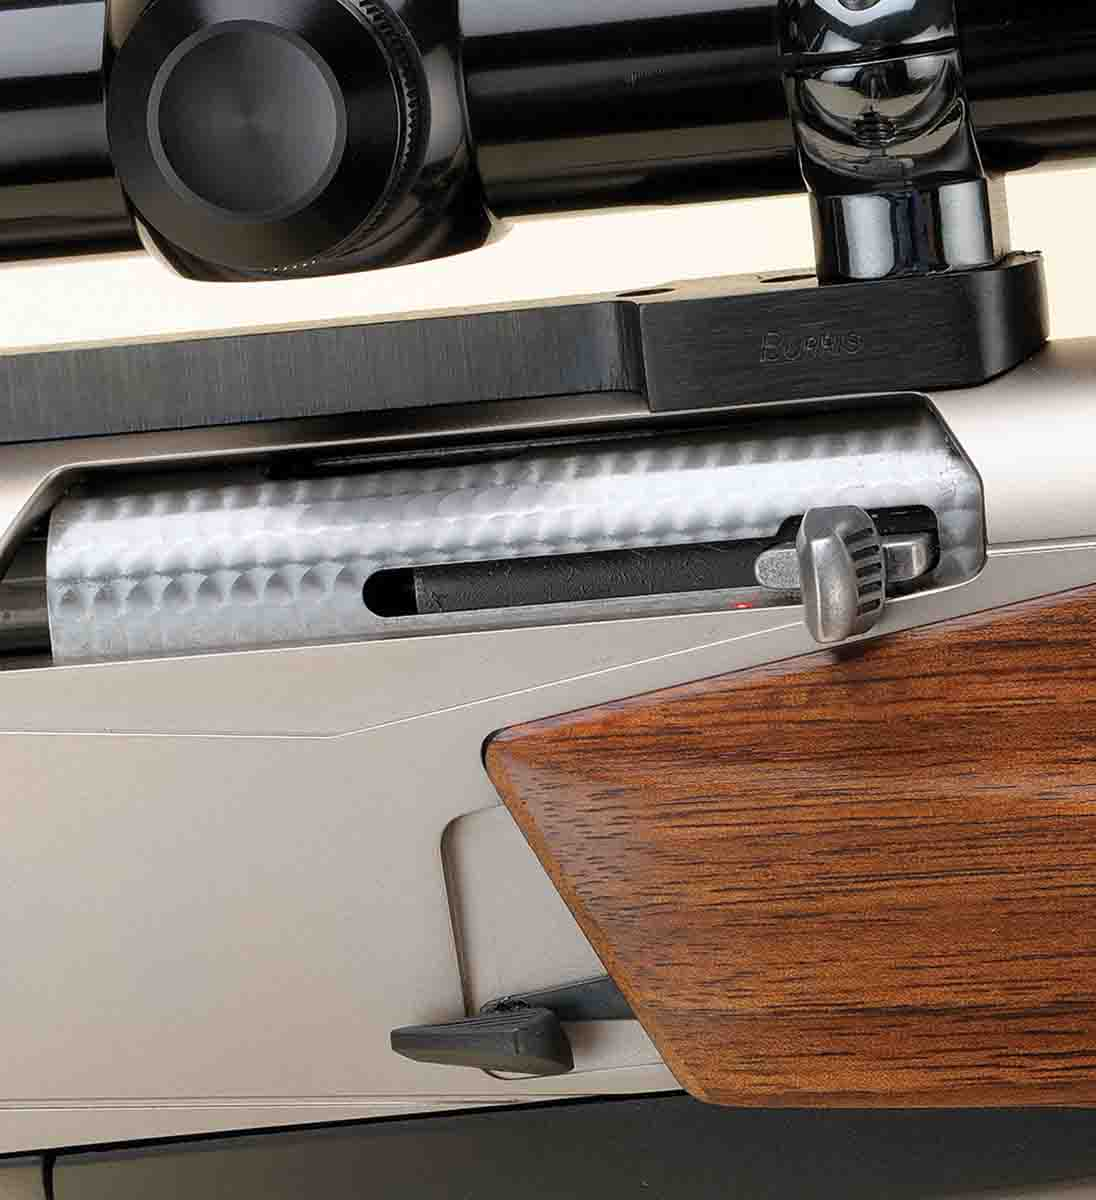 The release lever for the bolt is at the bottom center of the receiver. The bolt is jeweled for appearance and the forearm fits into a recess on the receiver.